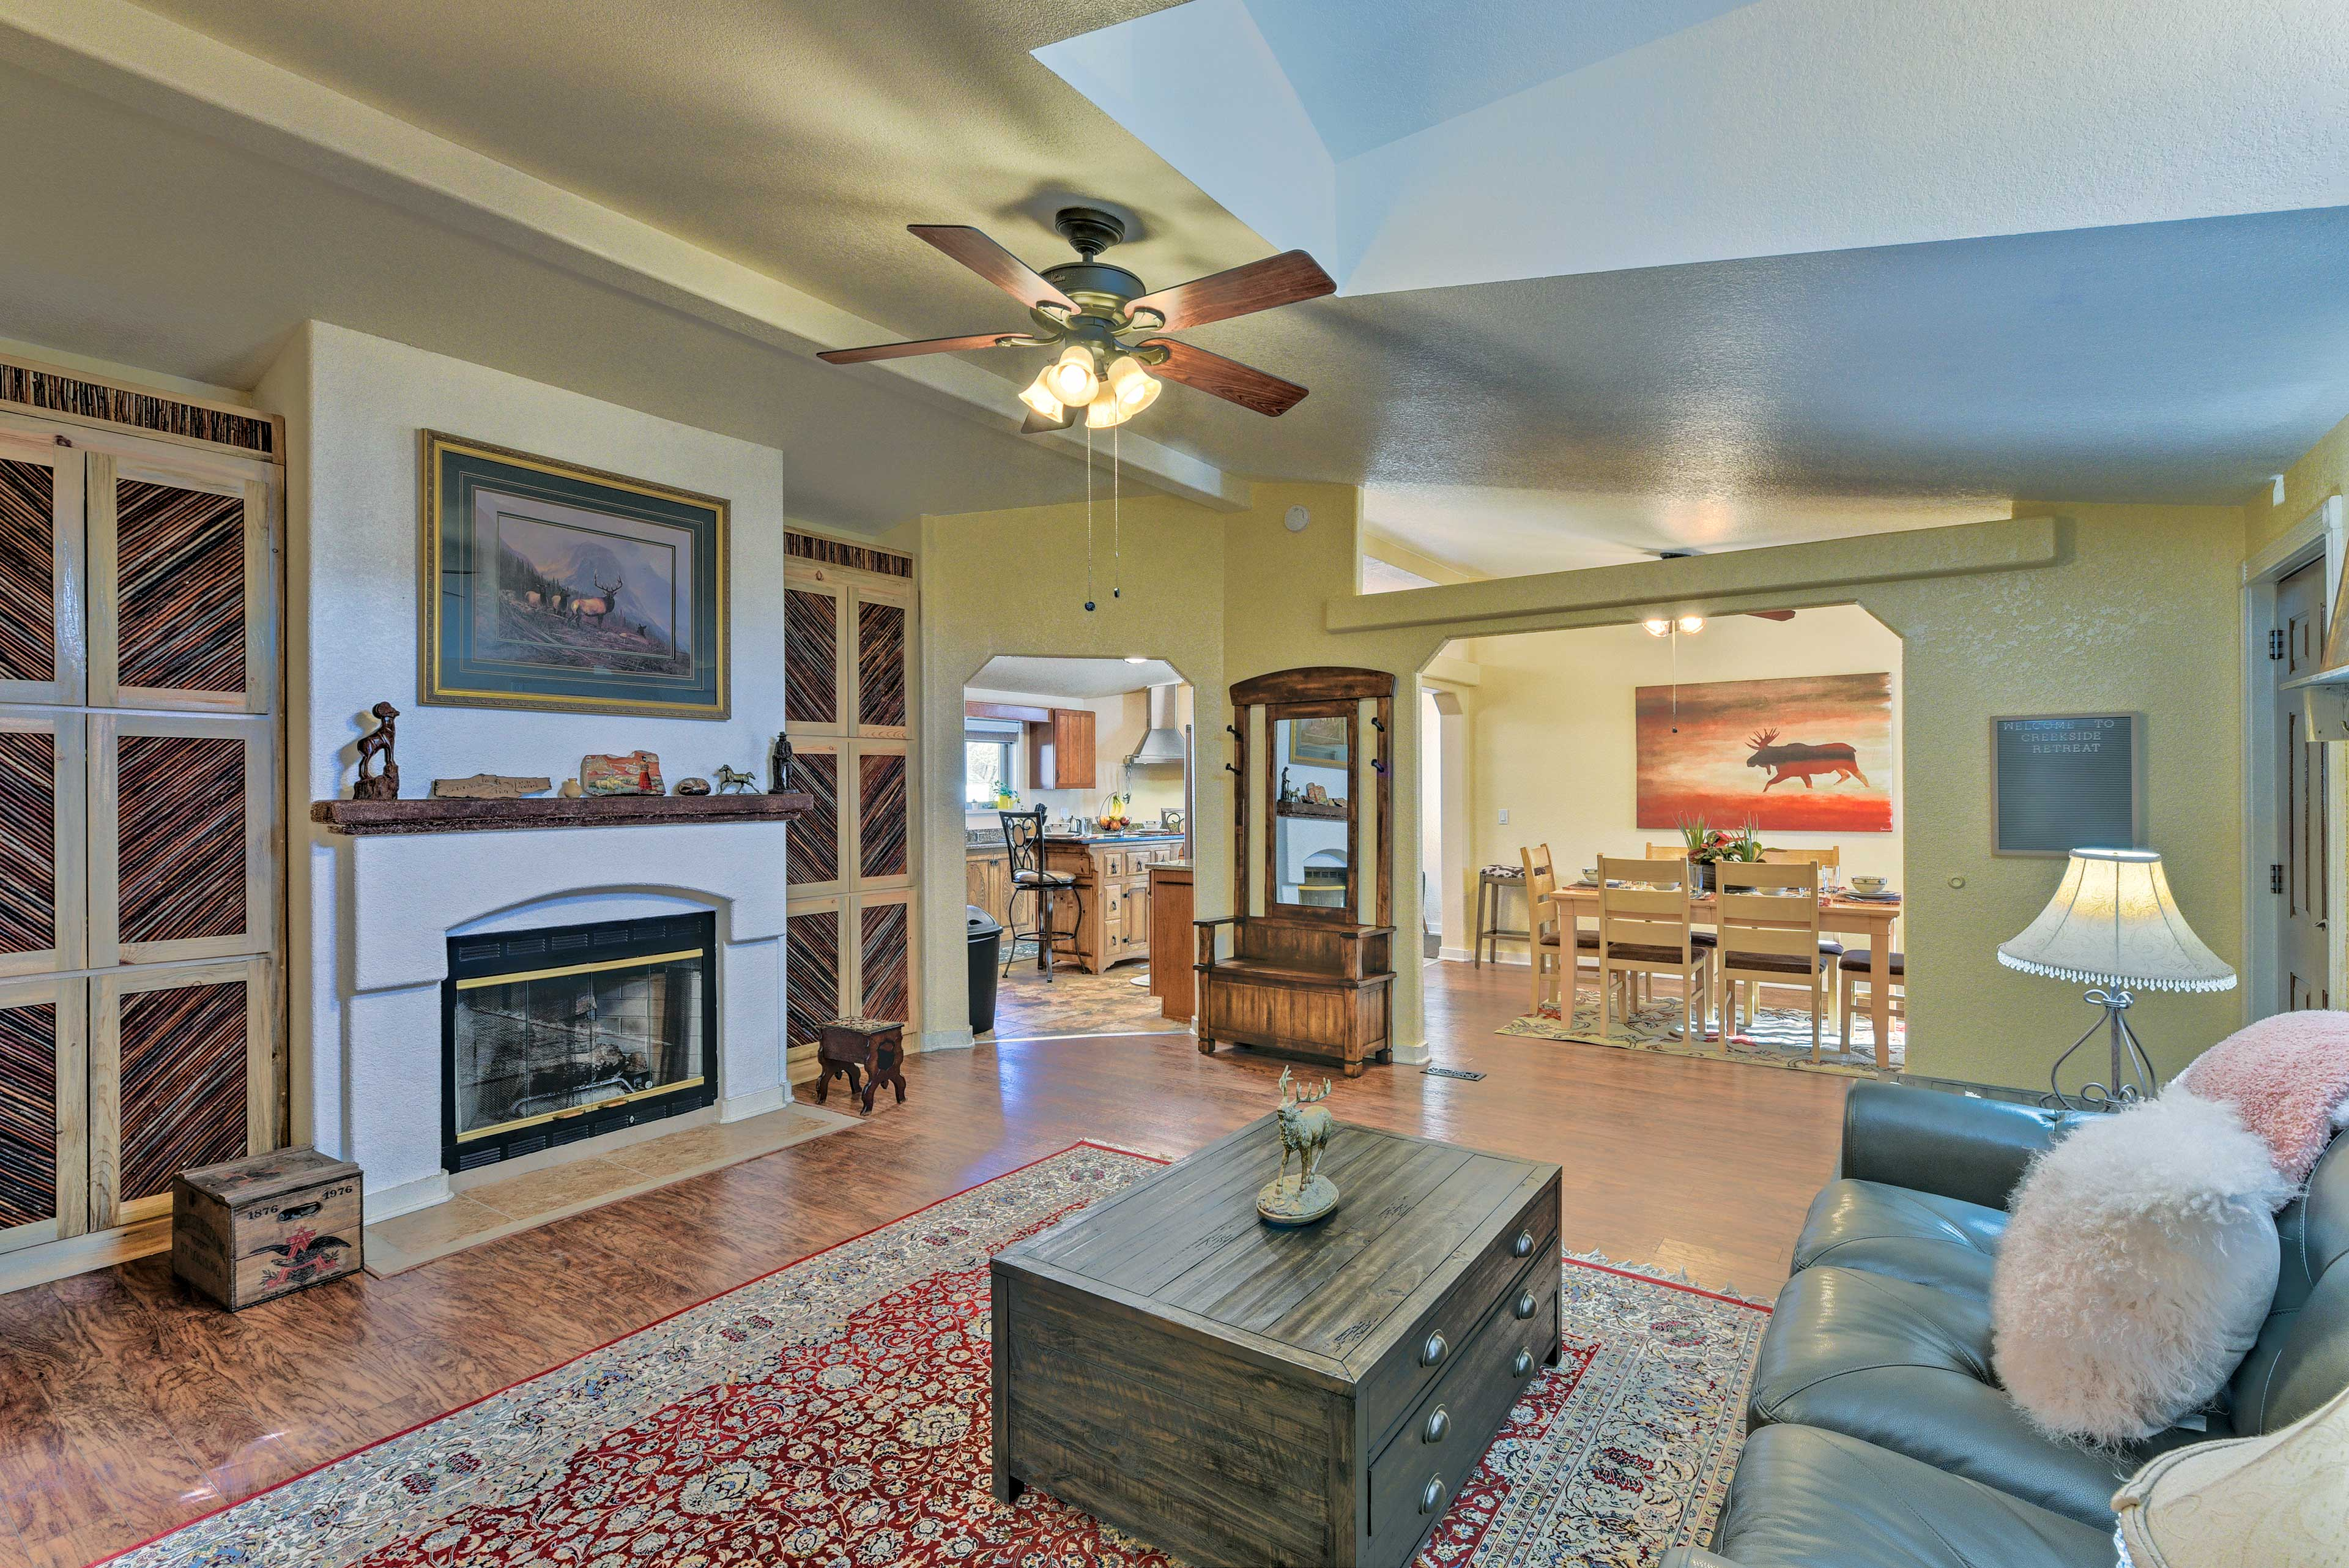 Gather a group of 9 & head to this spacious abode, located 5 minutes to Main St!